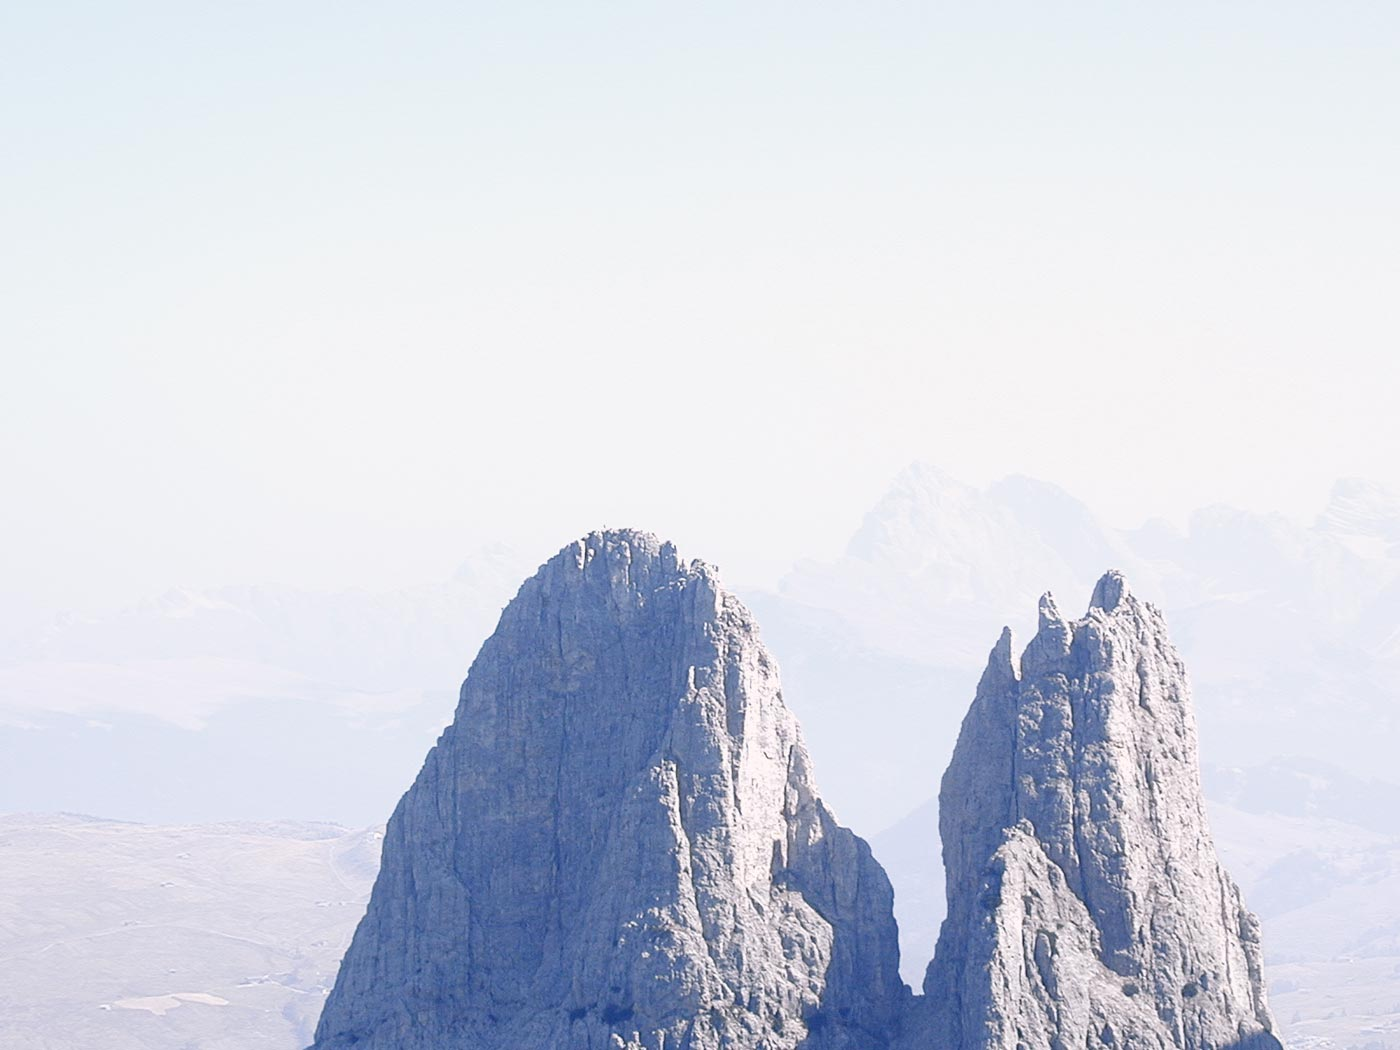 The Dolomites, a UNESCO Natural World Heritage